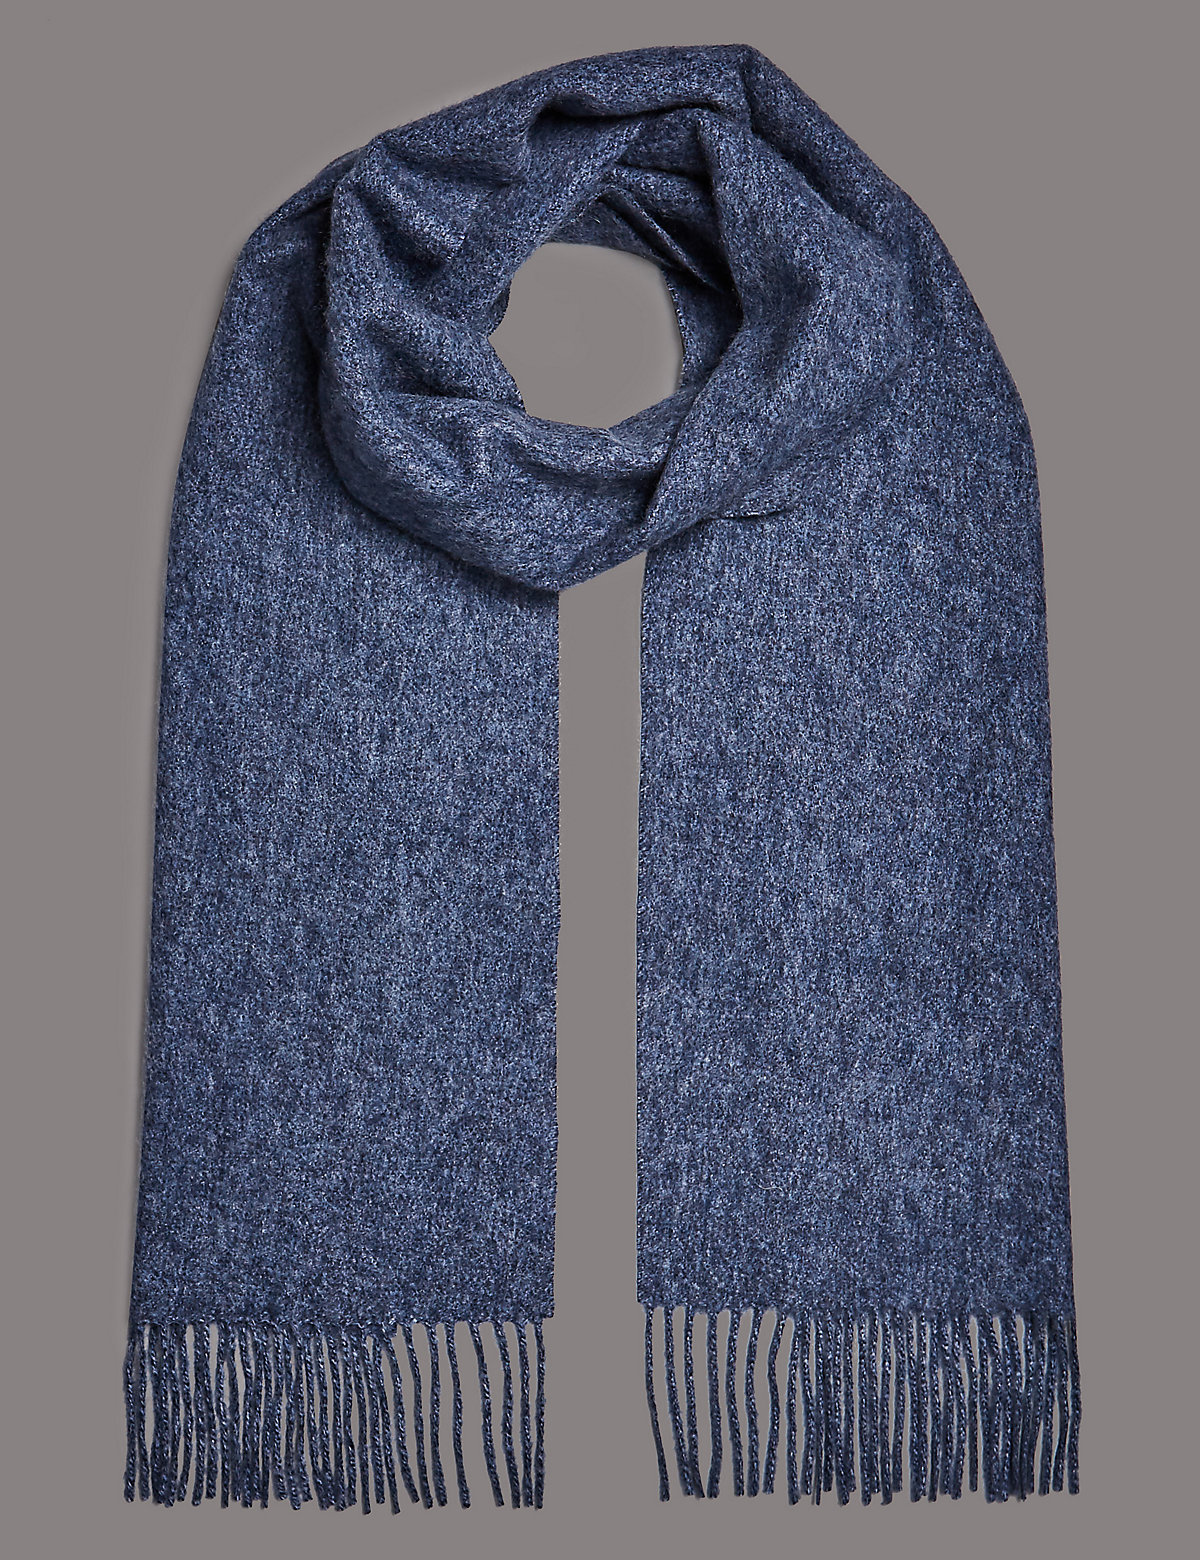 Marks & Spencer Blue Mix Pure Cashmere Wider Width Scarf